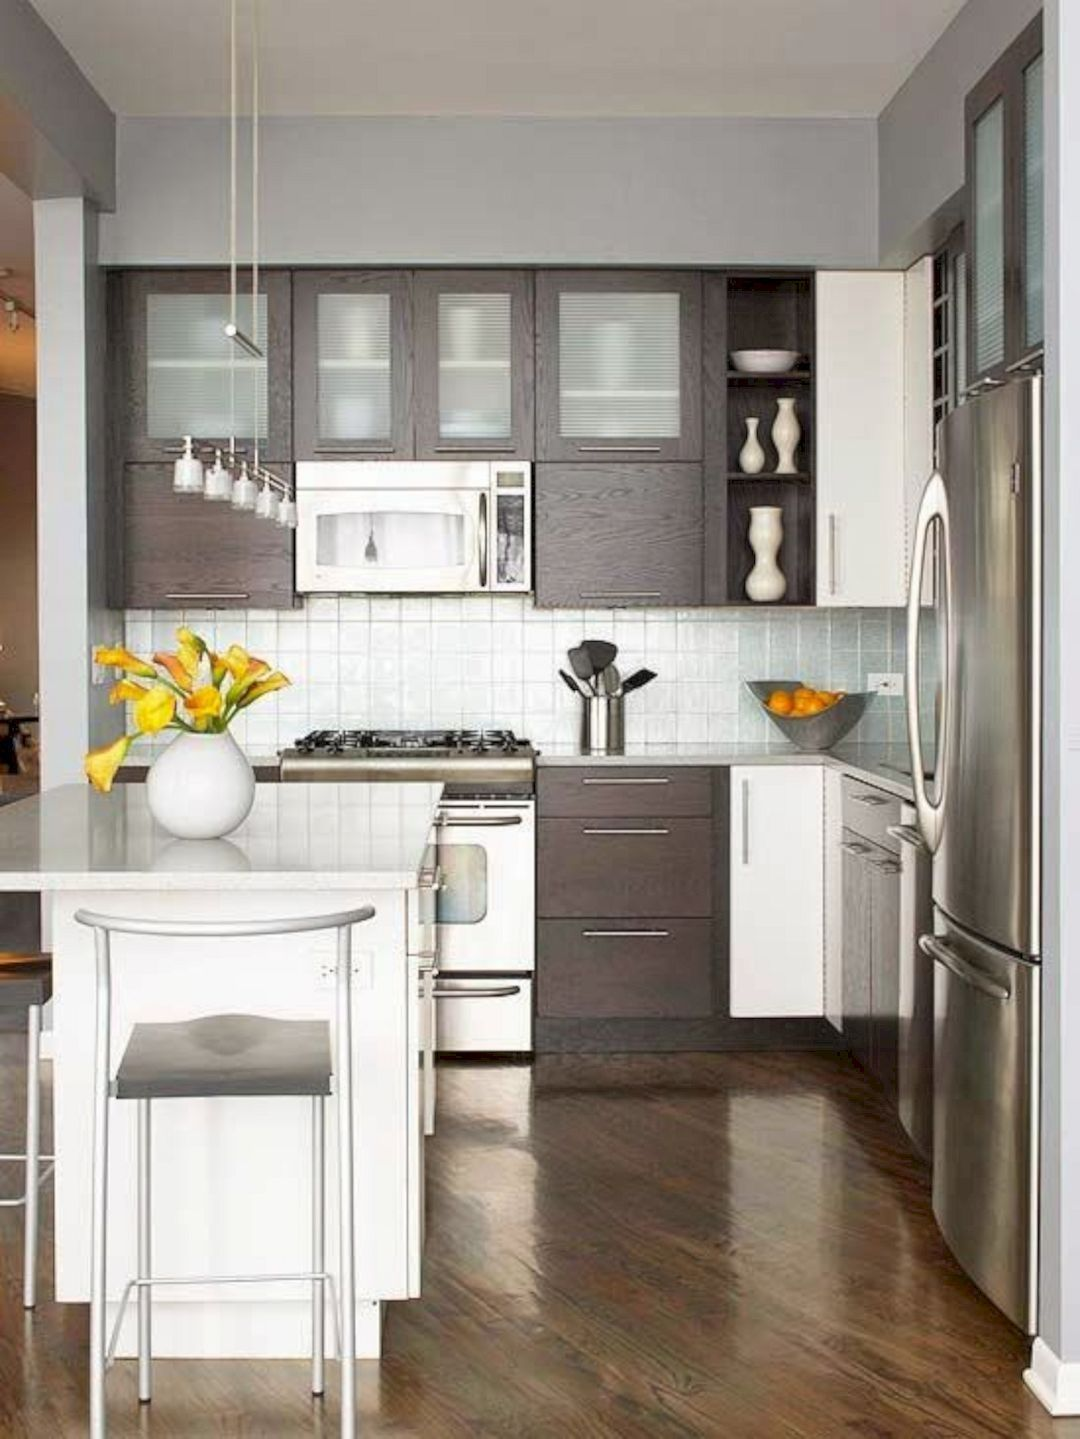 Amazing Small Kitchen Ideas For Small Space 65 Small Modern